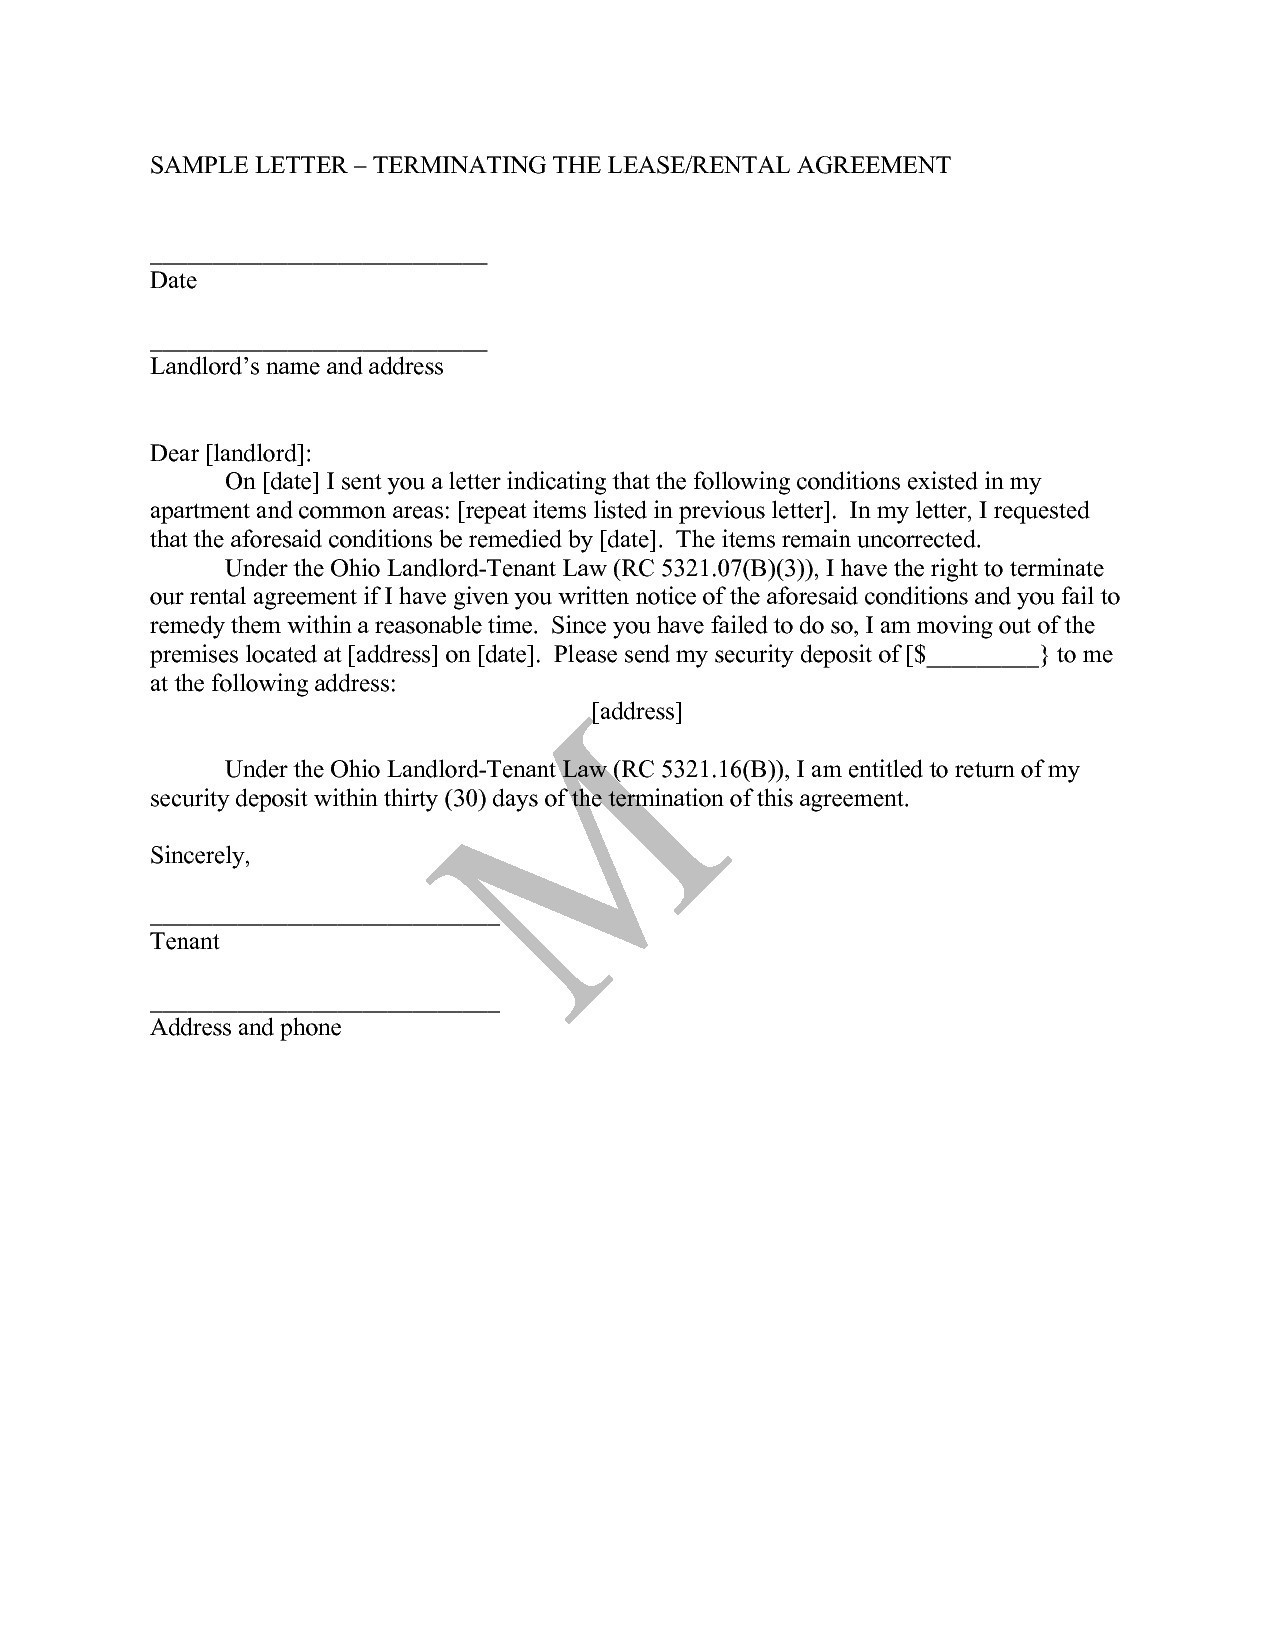 Rental Lease Termination Letter Template - Letter format for Agreement Termination Valid Letter format for